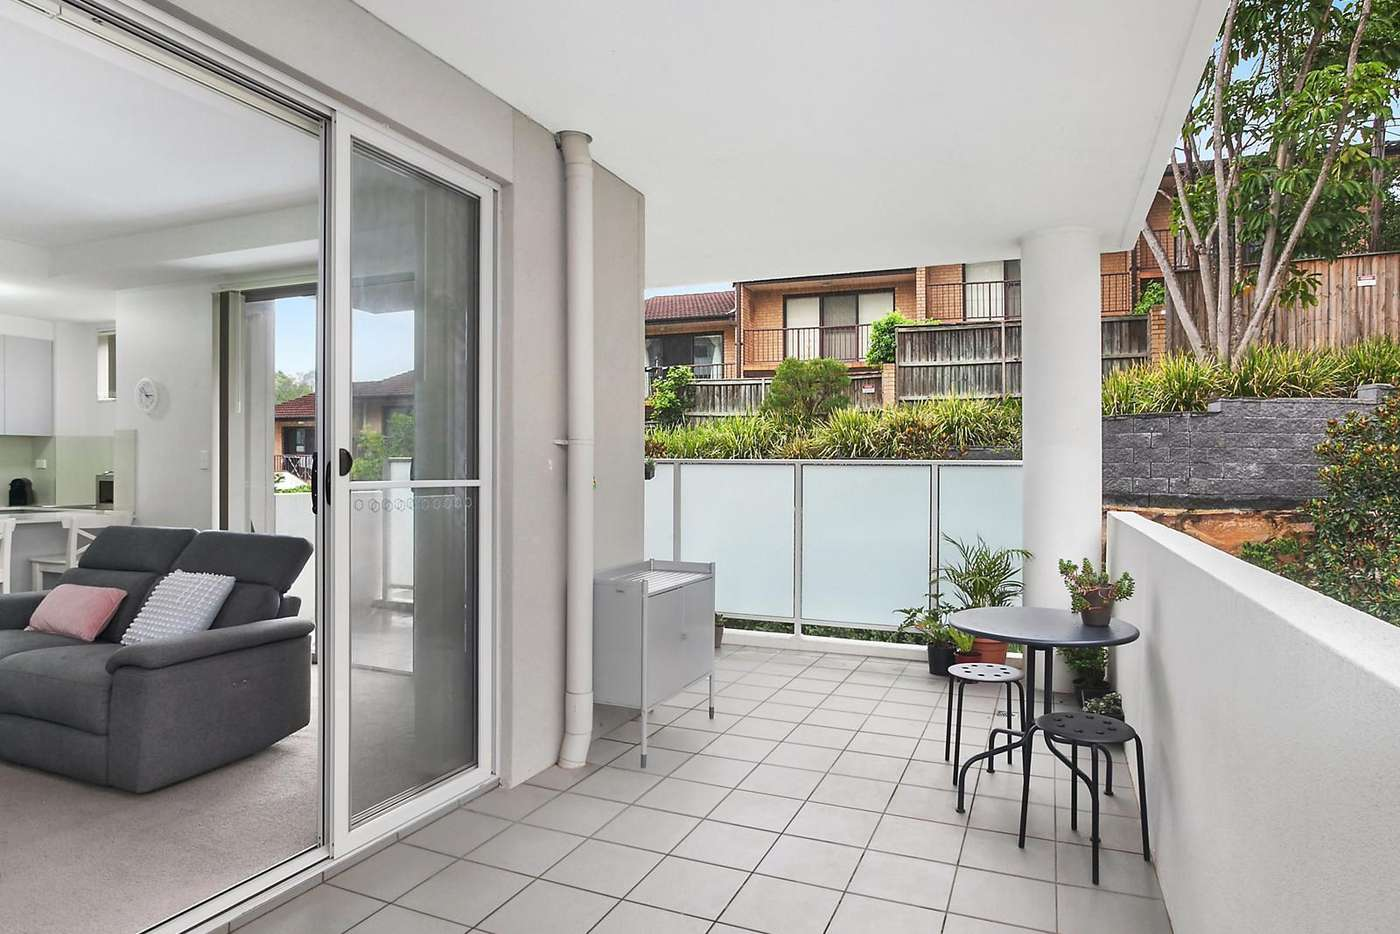 Main view of Homely apartment listing, 16/5 Belair Close, Hornsby NSW 2077